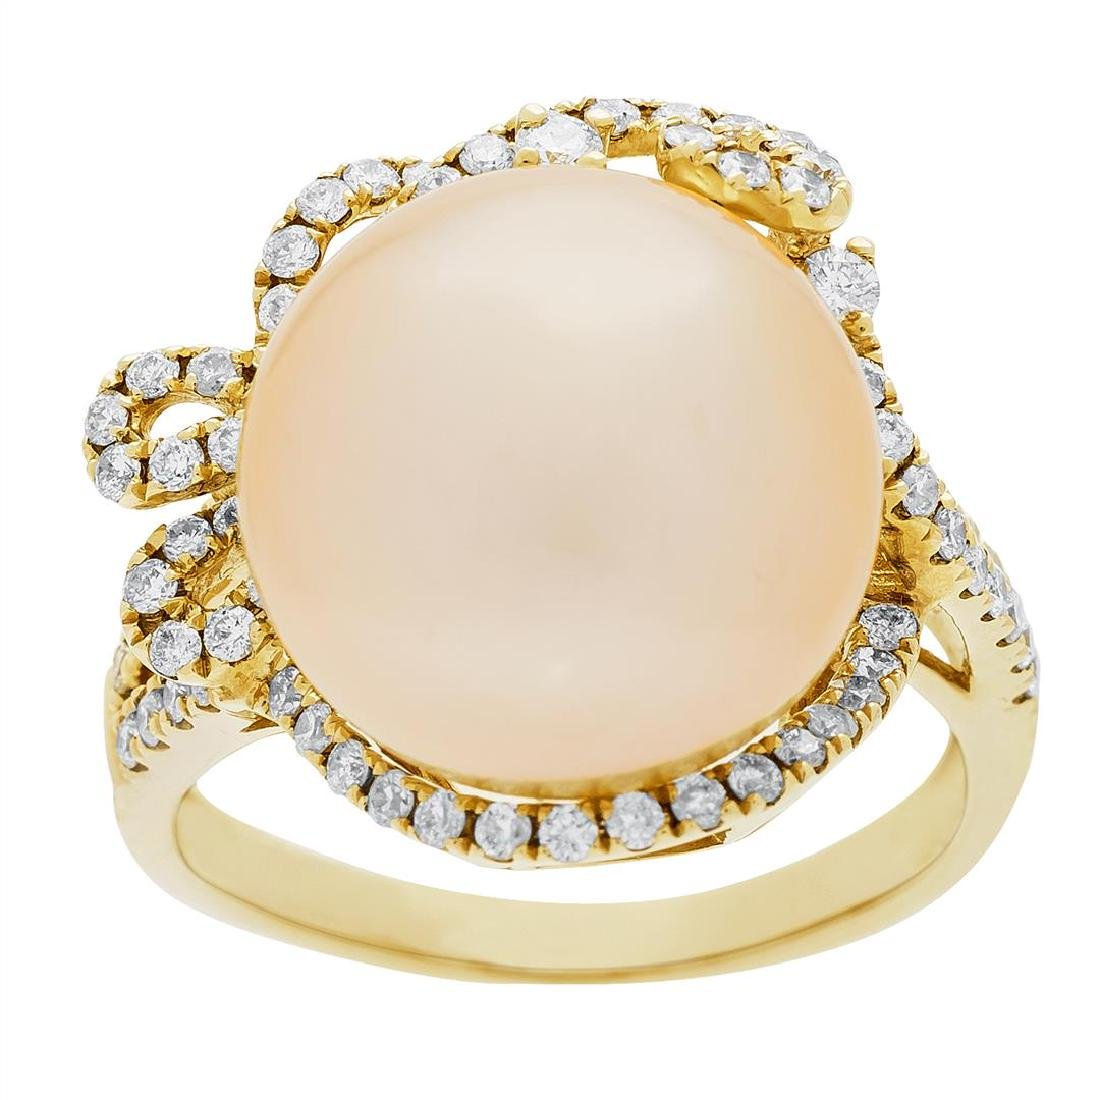 0.59 ctw Diamond and Pearl Ring - 18KT Yellow Gold - 2